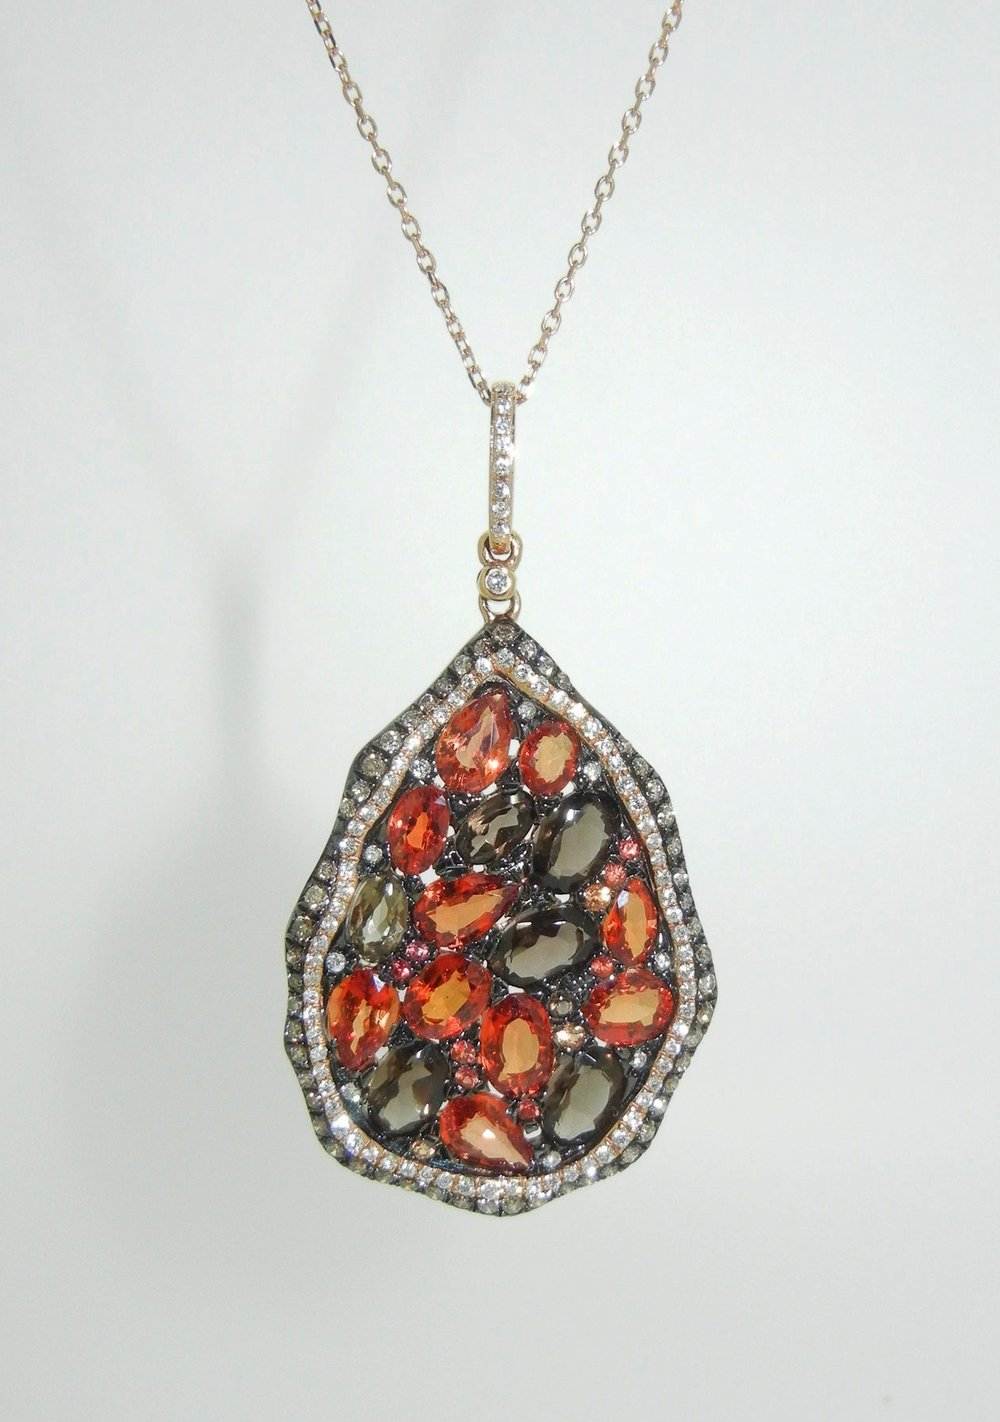 Sapphire, Diamond, and Quartz Pendant set in 18K Rose Gold $3,350